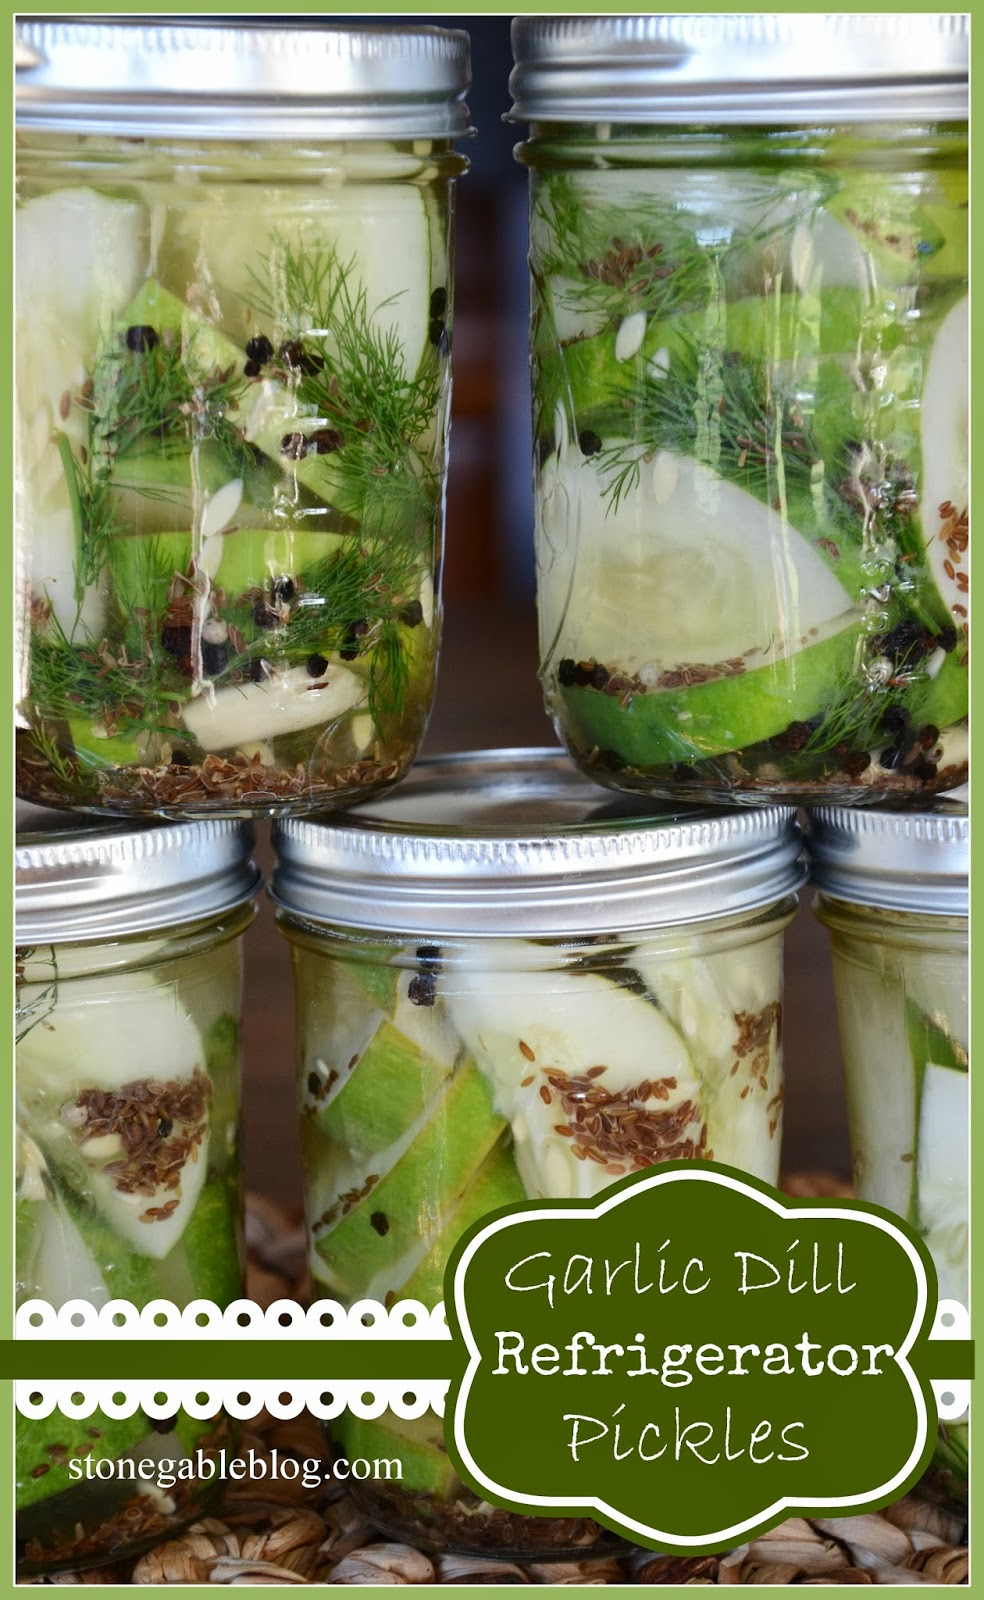 ... pickles! Crazy easy and puckery good GARLIC DILL REFRIGERATOR PICKLES